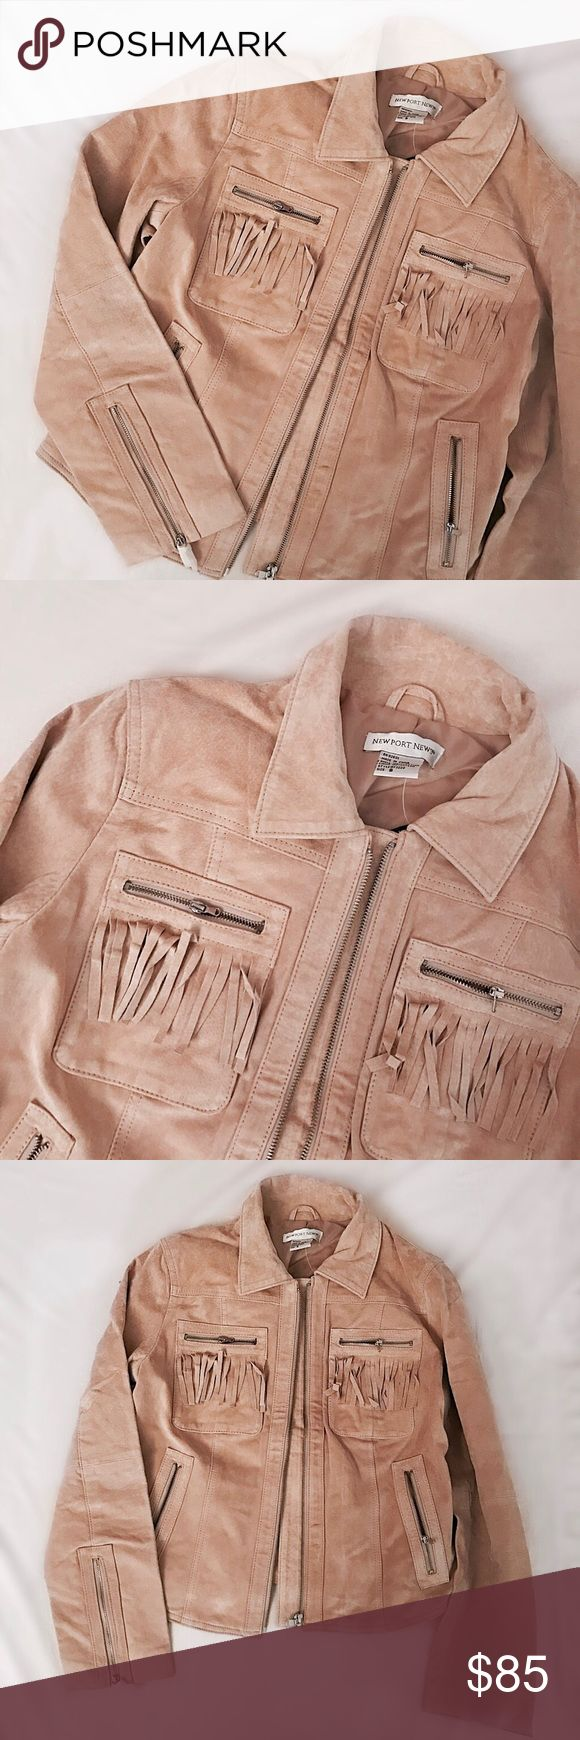 """Vintage 1970s Fringe Suede Jacket Vintage tan suede jacket with fringe- a total classic to pair with jeans and tshirts. Features suede fringe to front pockets and back, silver zip front hardware. Brand new with tags, rendered in lightly textured natural suede. Channel your inner Anita Pallenberg by wearing this over a vintage dress. Best for a size S-M, 24""""L, 18.5""""p to p. Retail value $200. Vintage Jackets & Coats"""